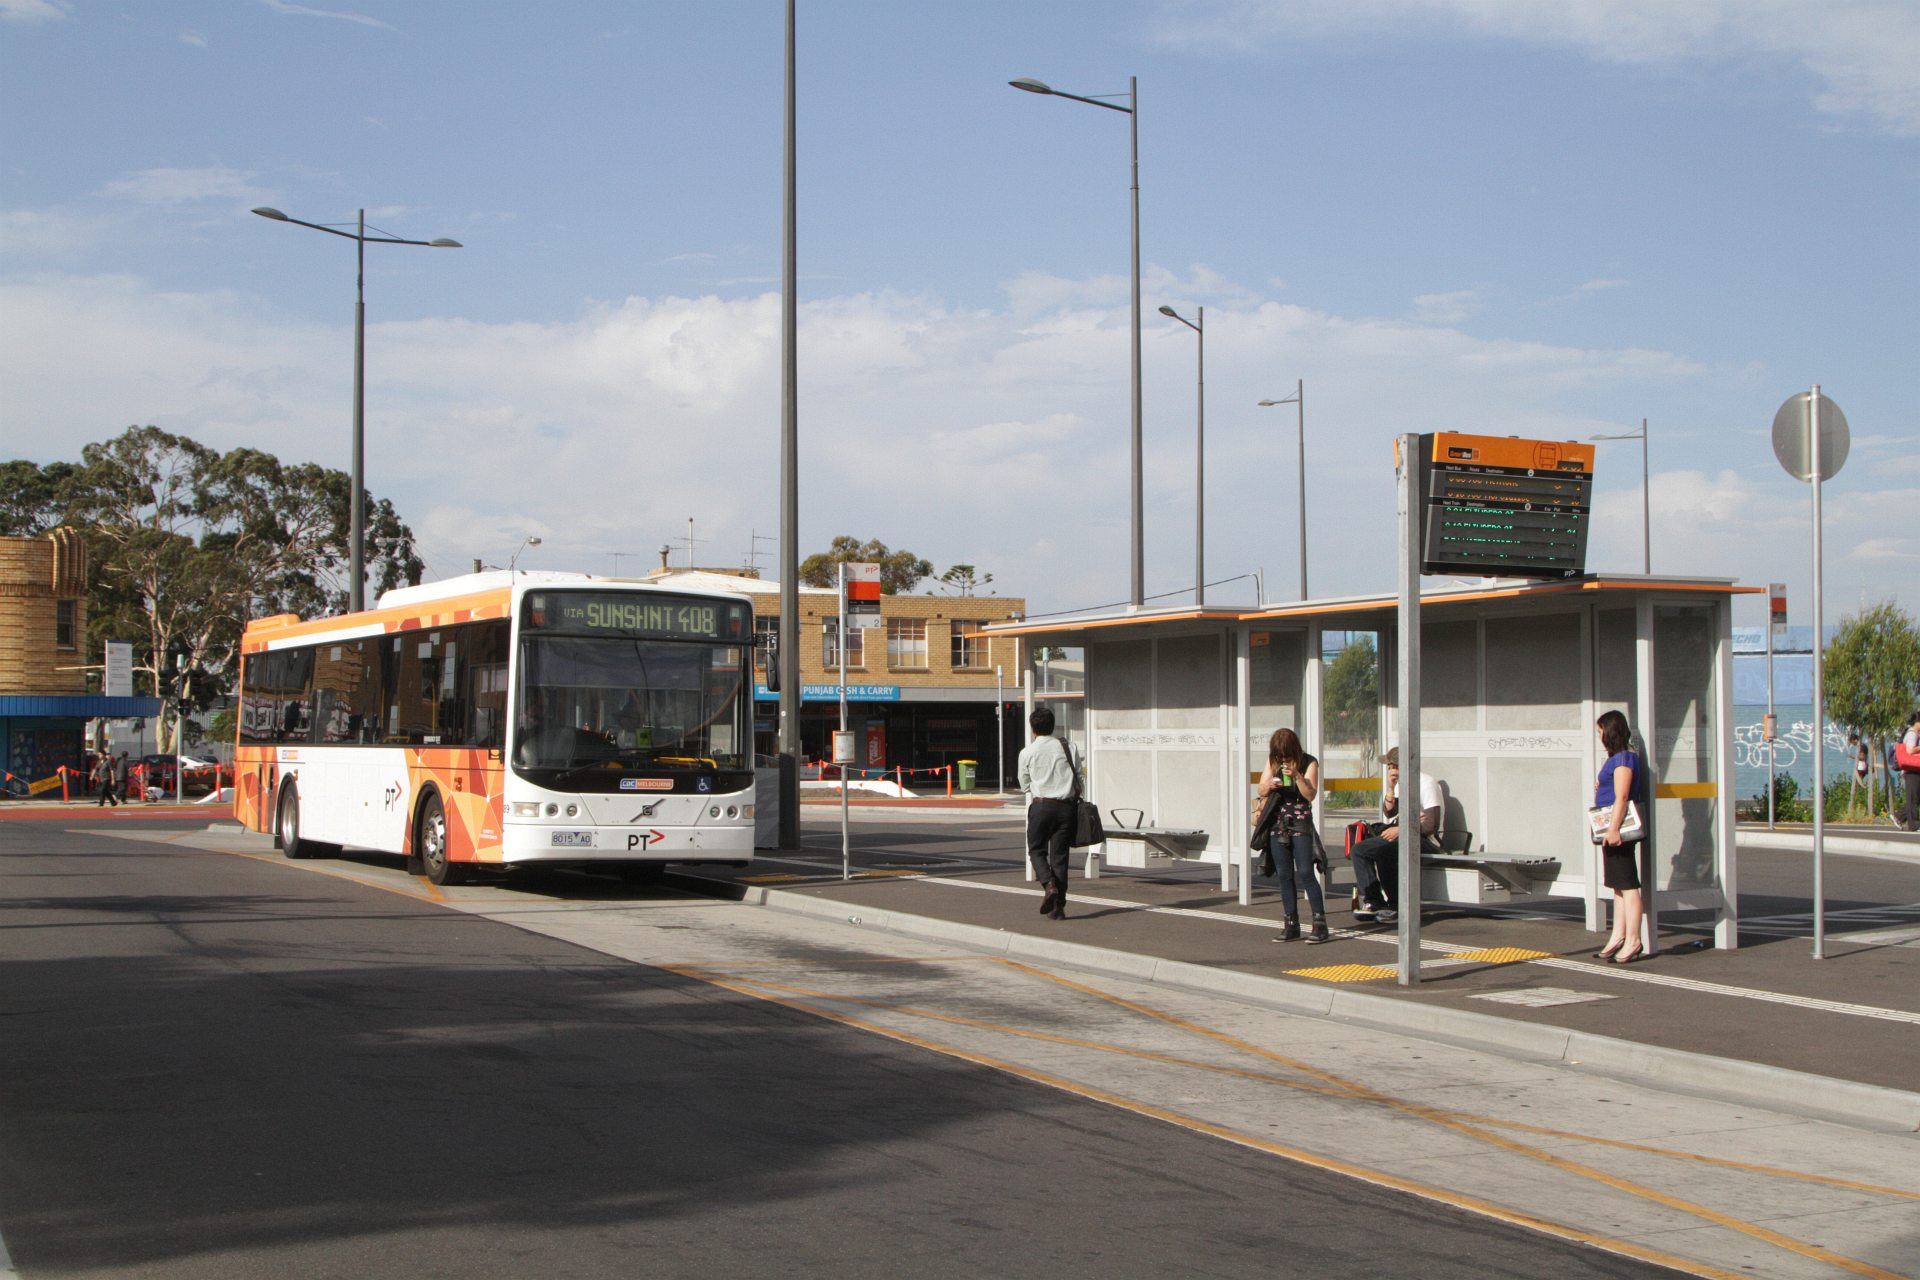 Melbourne's bus stops to nowhere - Waking up in Geelong